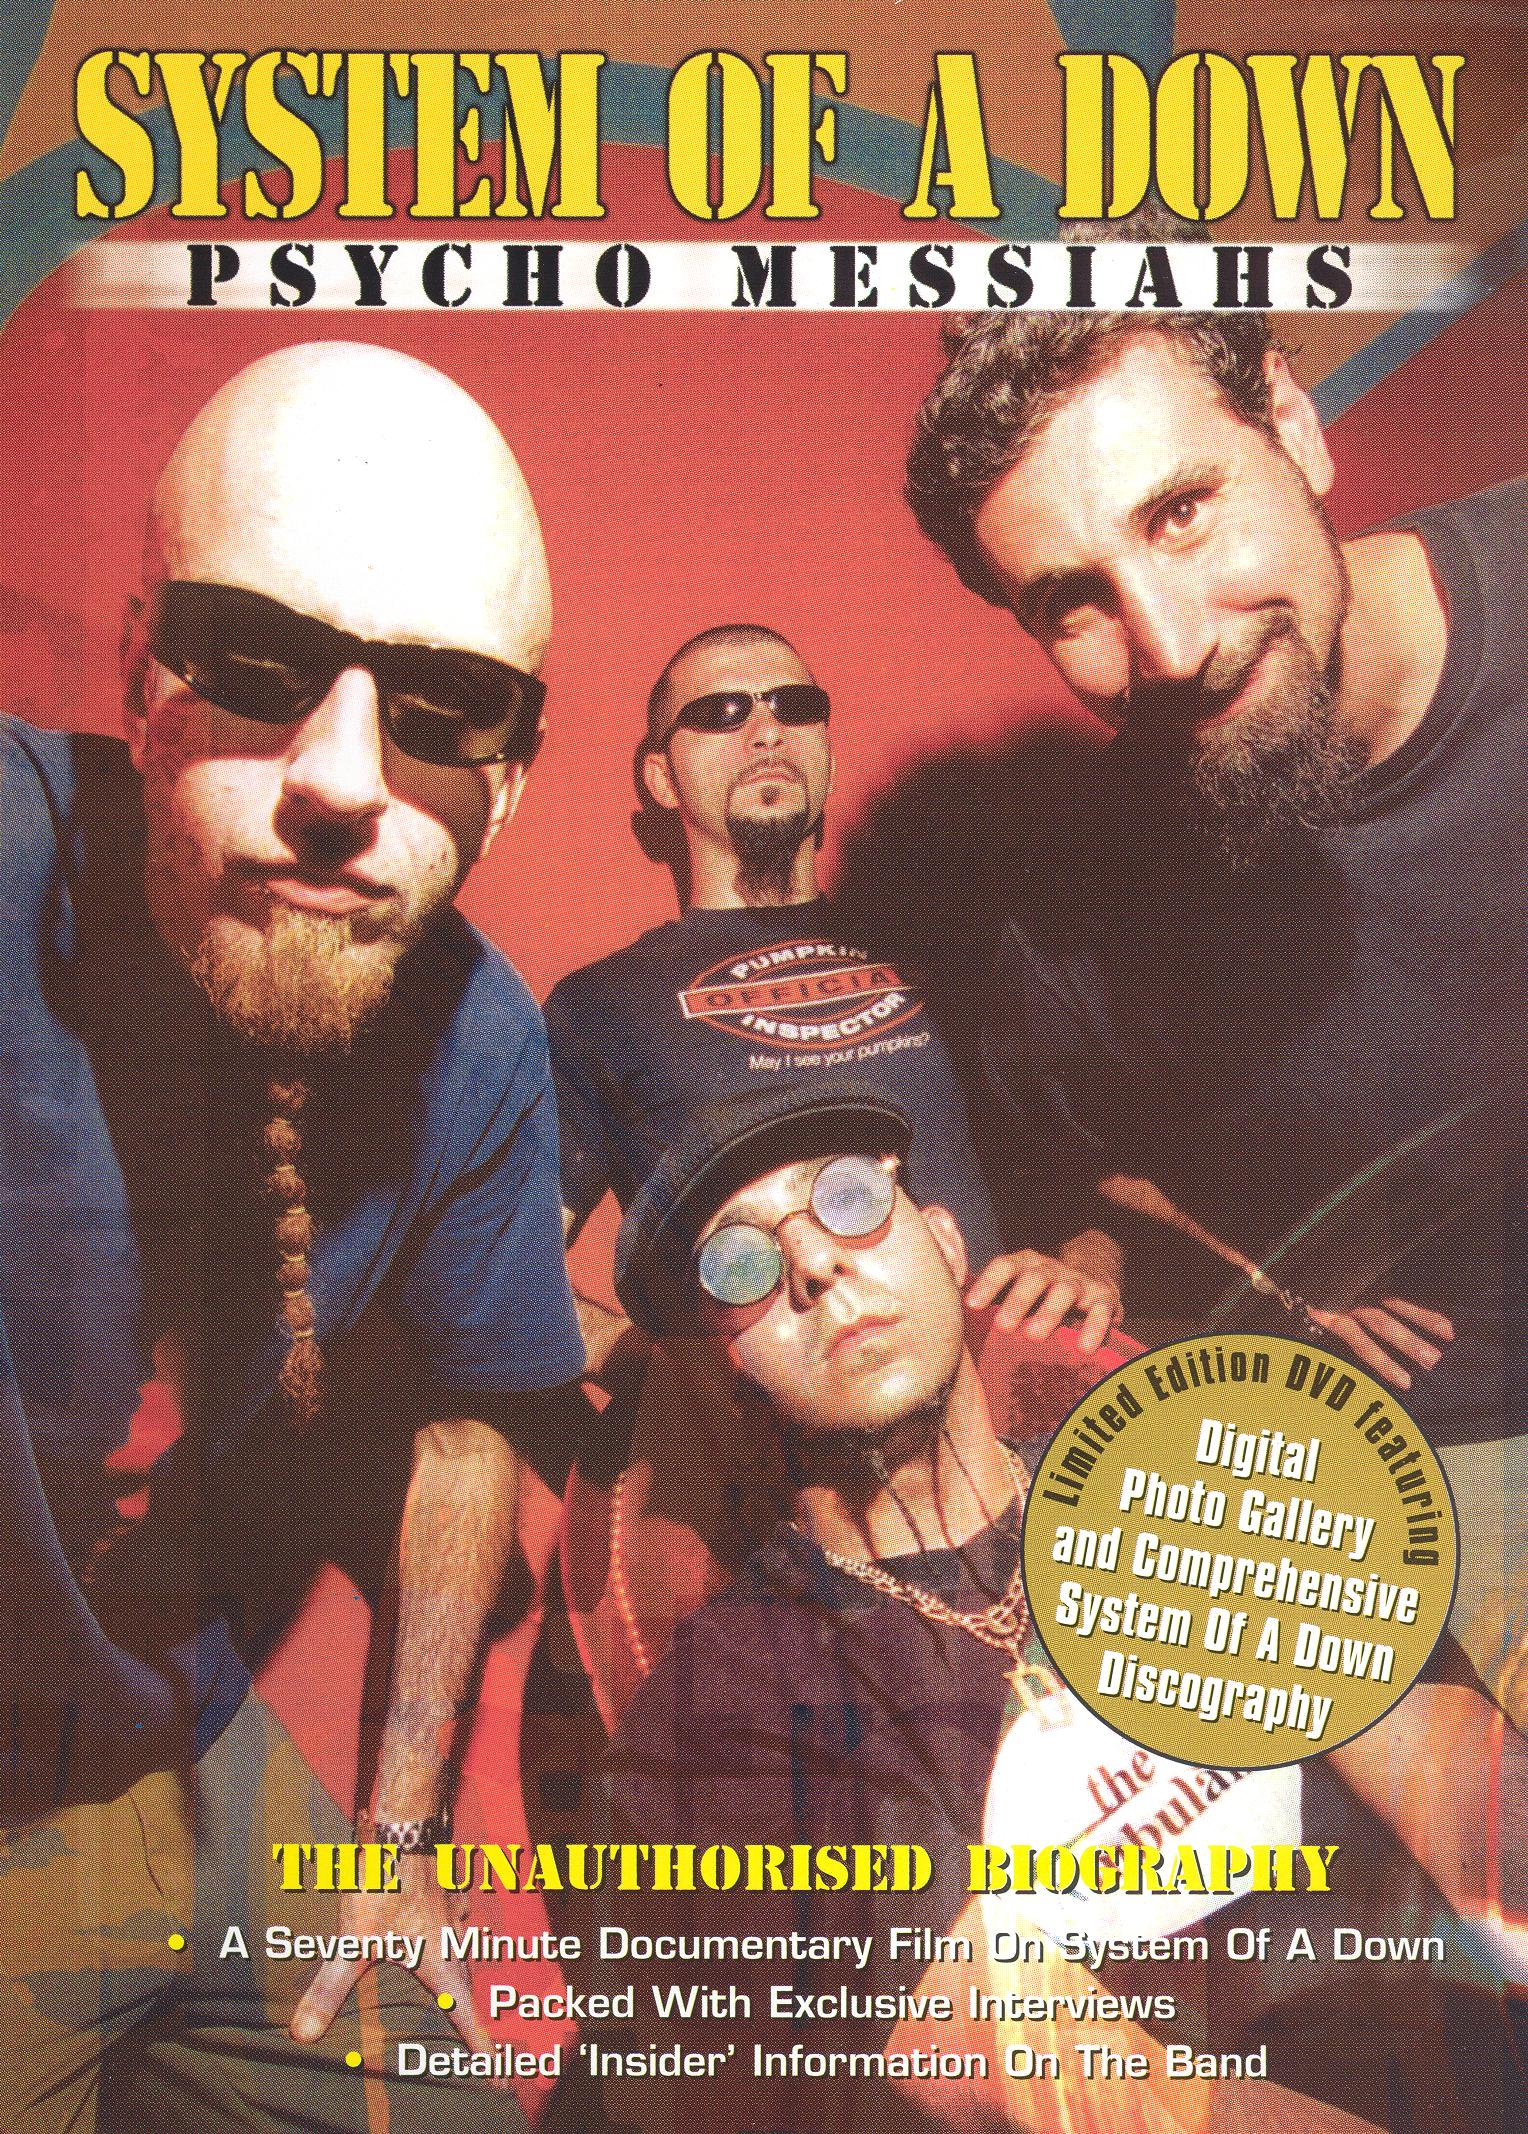 System of a Down: Psycho Messiahs - The Unauthorized Biography